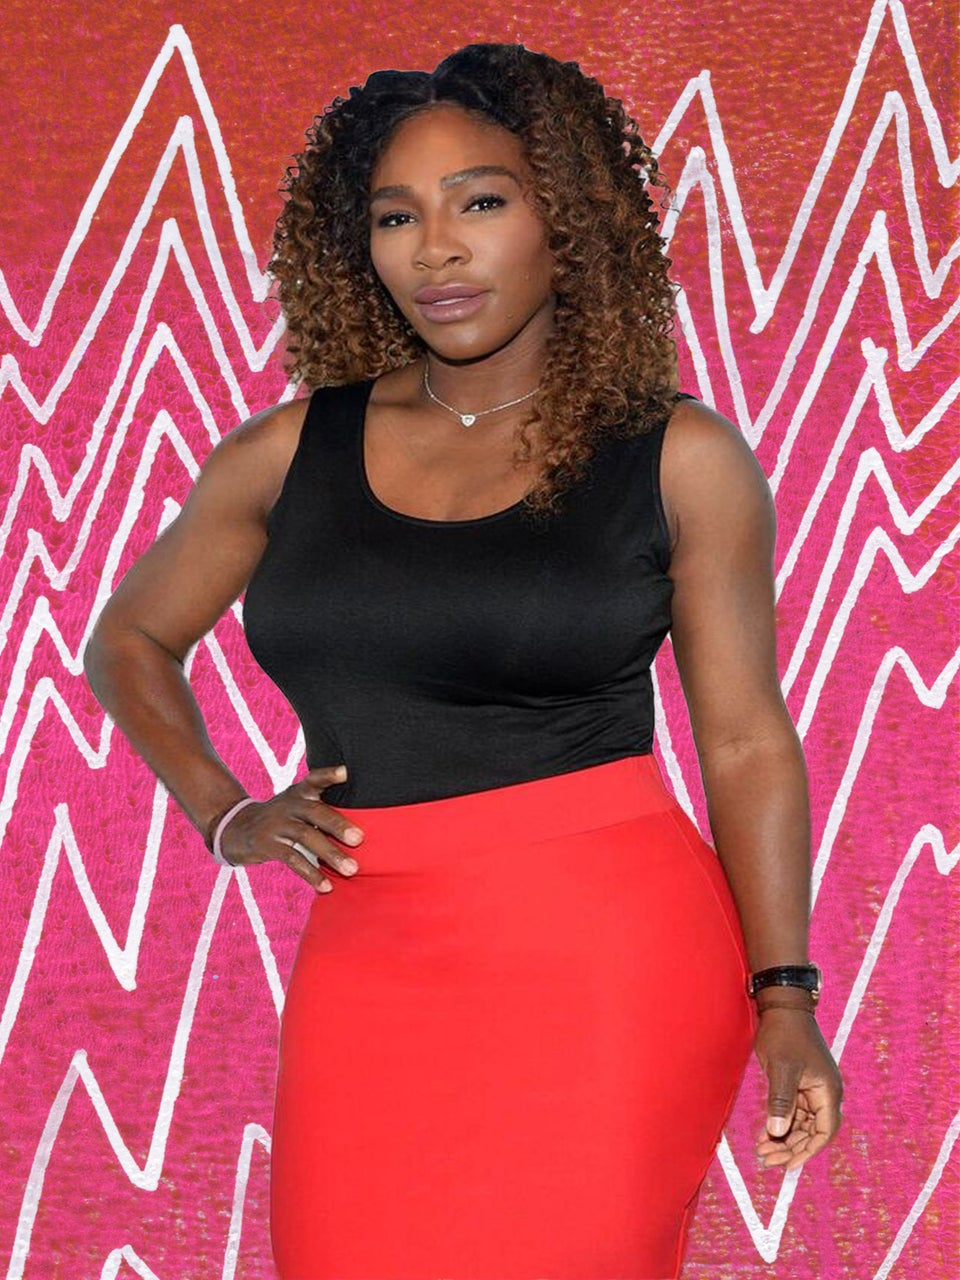 Sports Reporter Apologizes For Asking Serena Williams Some Truly Awful Questions